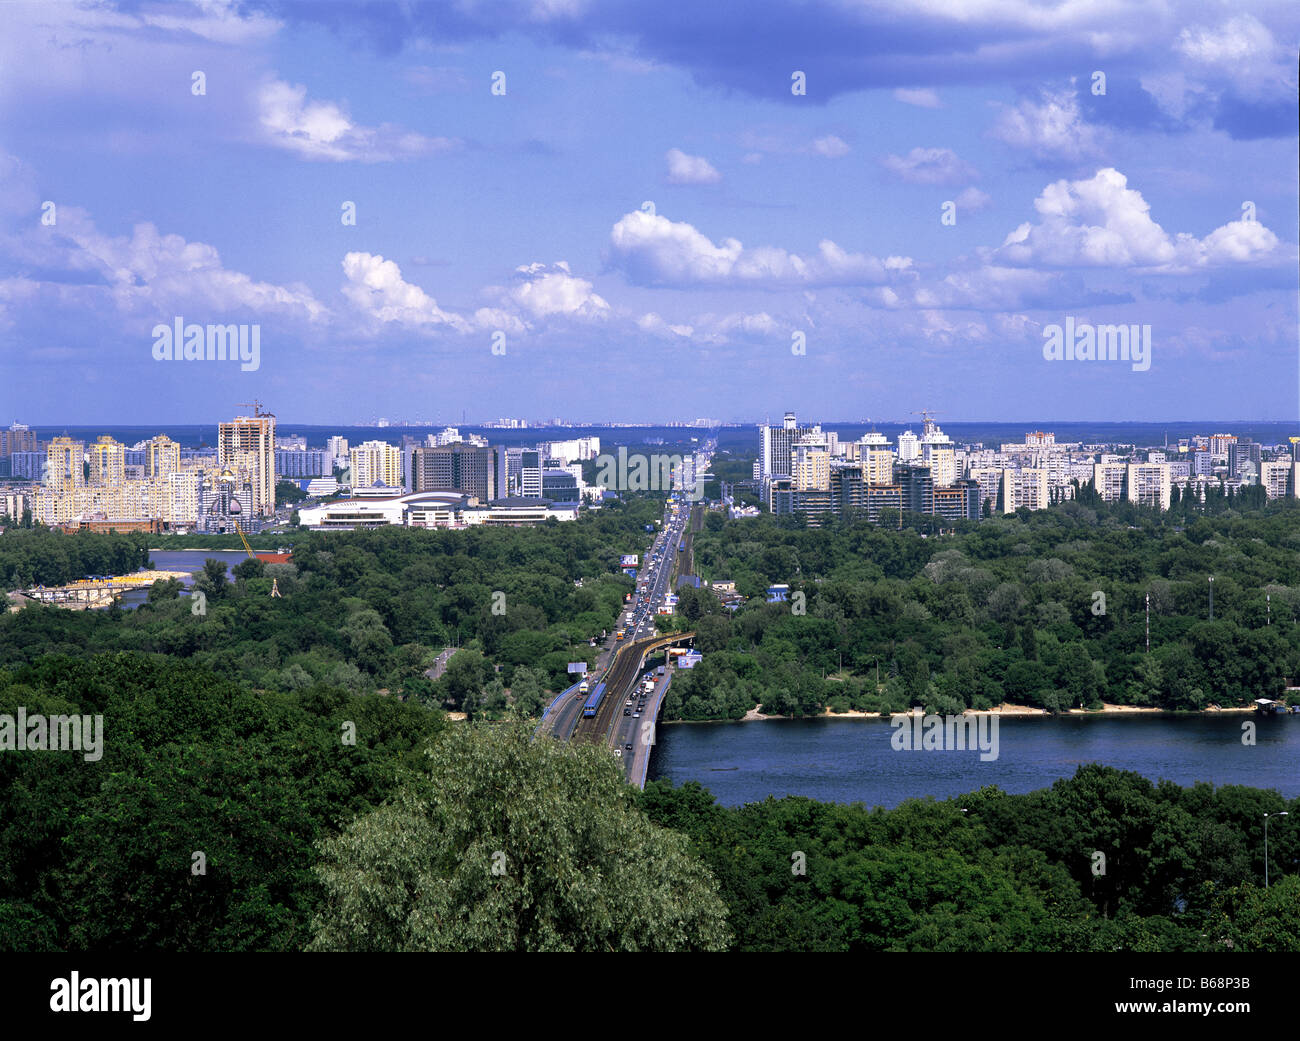 View of Dnieper River and city from Vichinoyi Slavy Park, Kiev, Ukraine - Stock Image